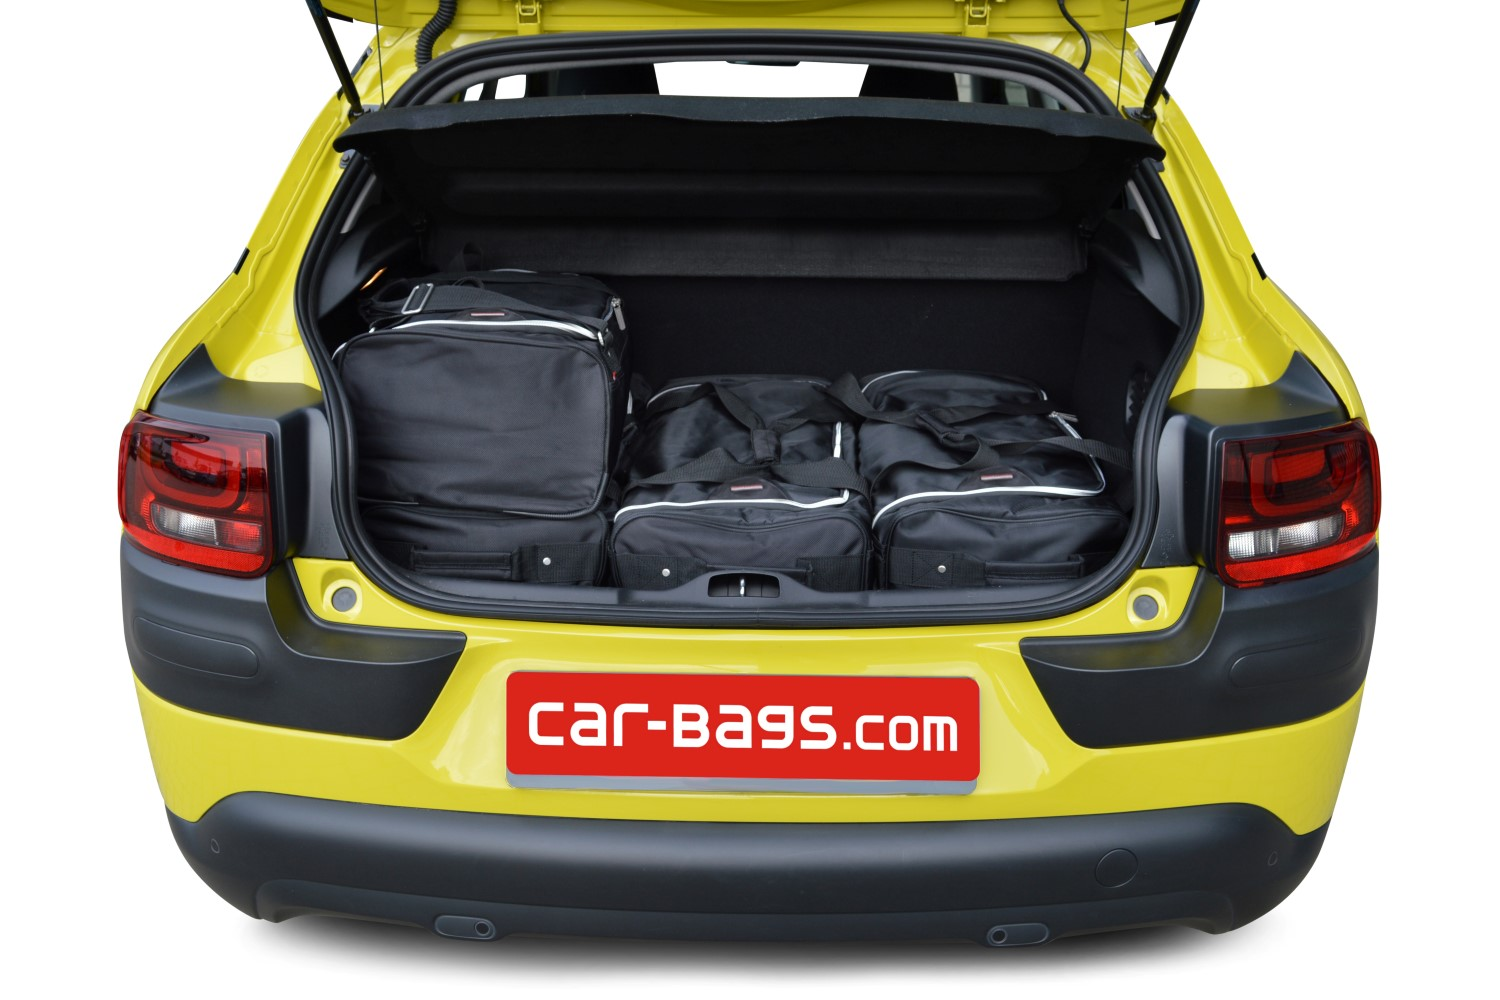 c4 citro n c4 cactus 2014 present 5d car bags travel bags. Black Bedroom Furniture Sets. Home Design Ideas